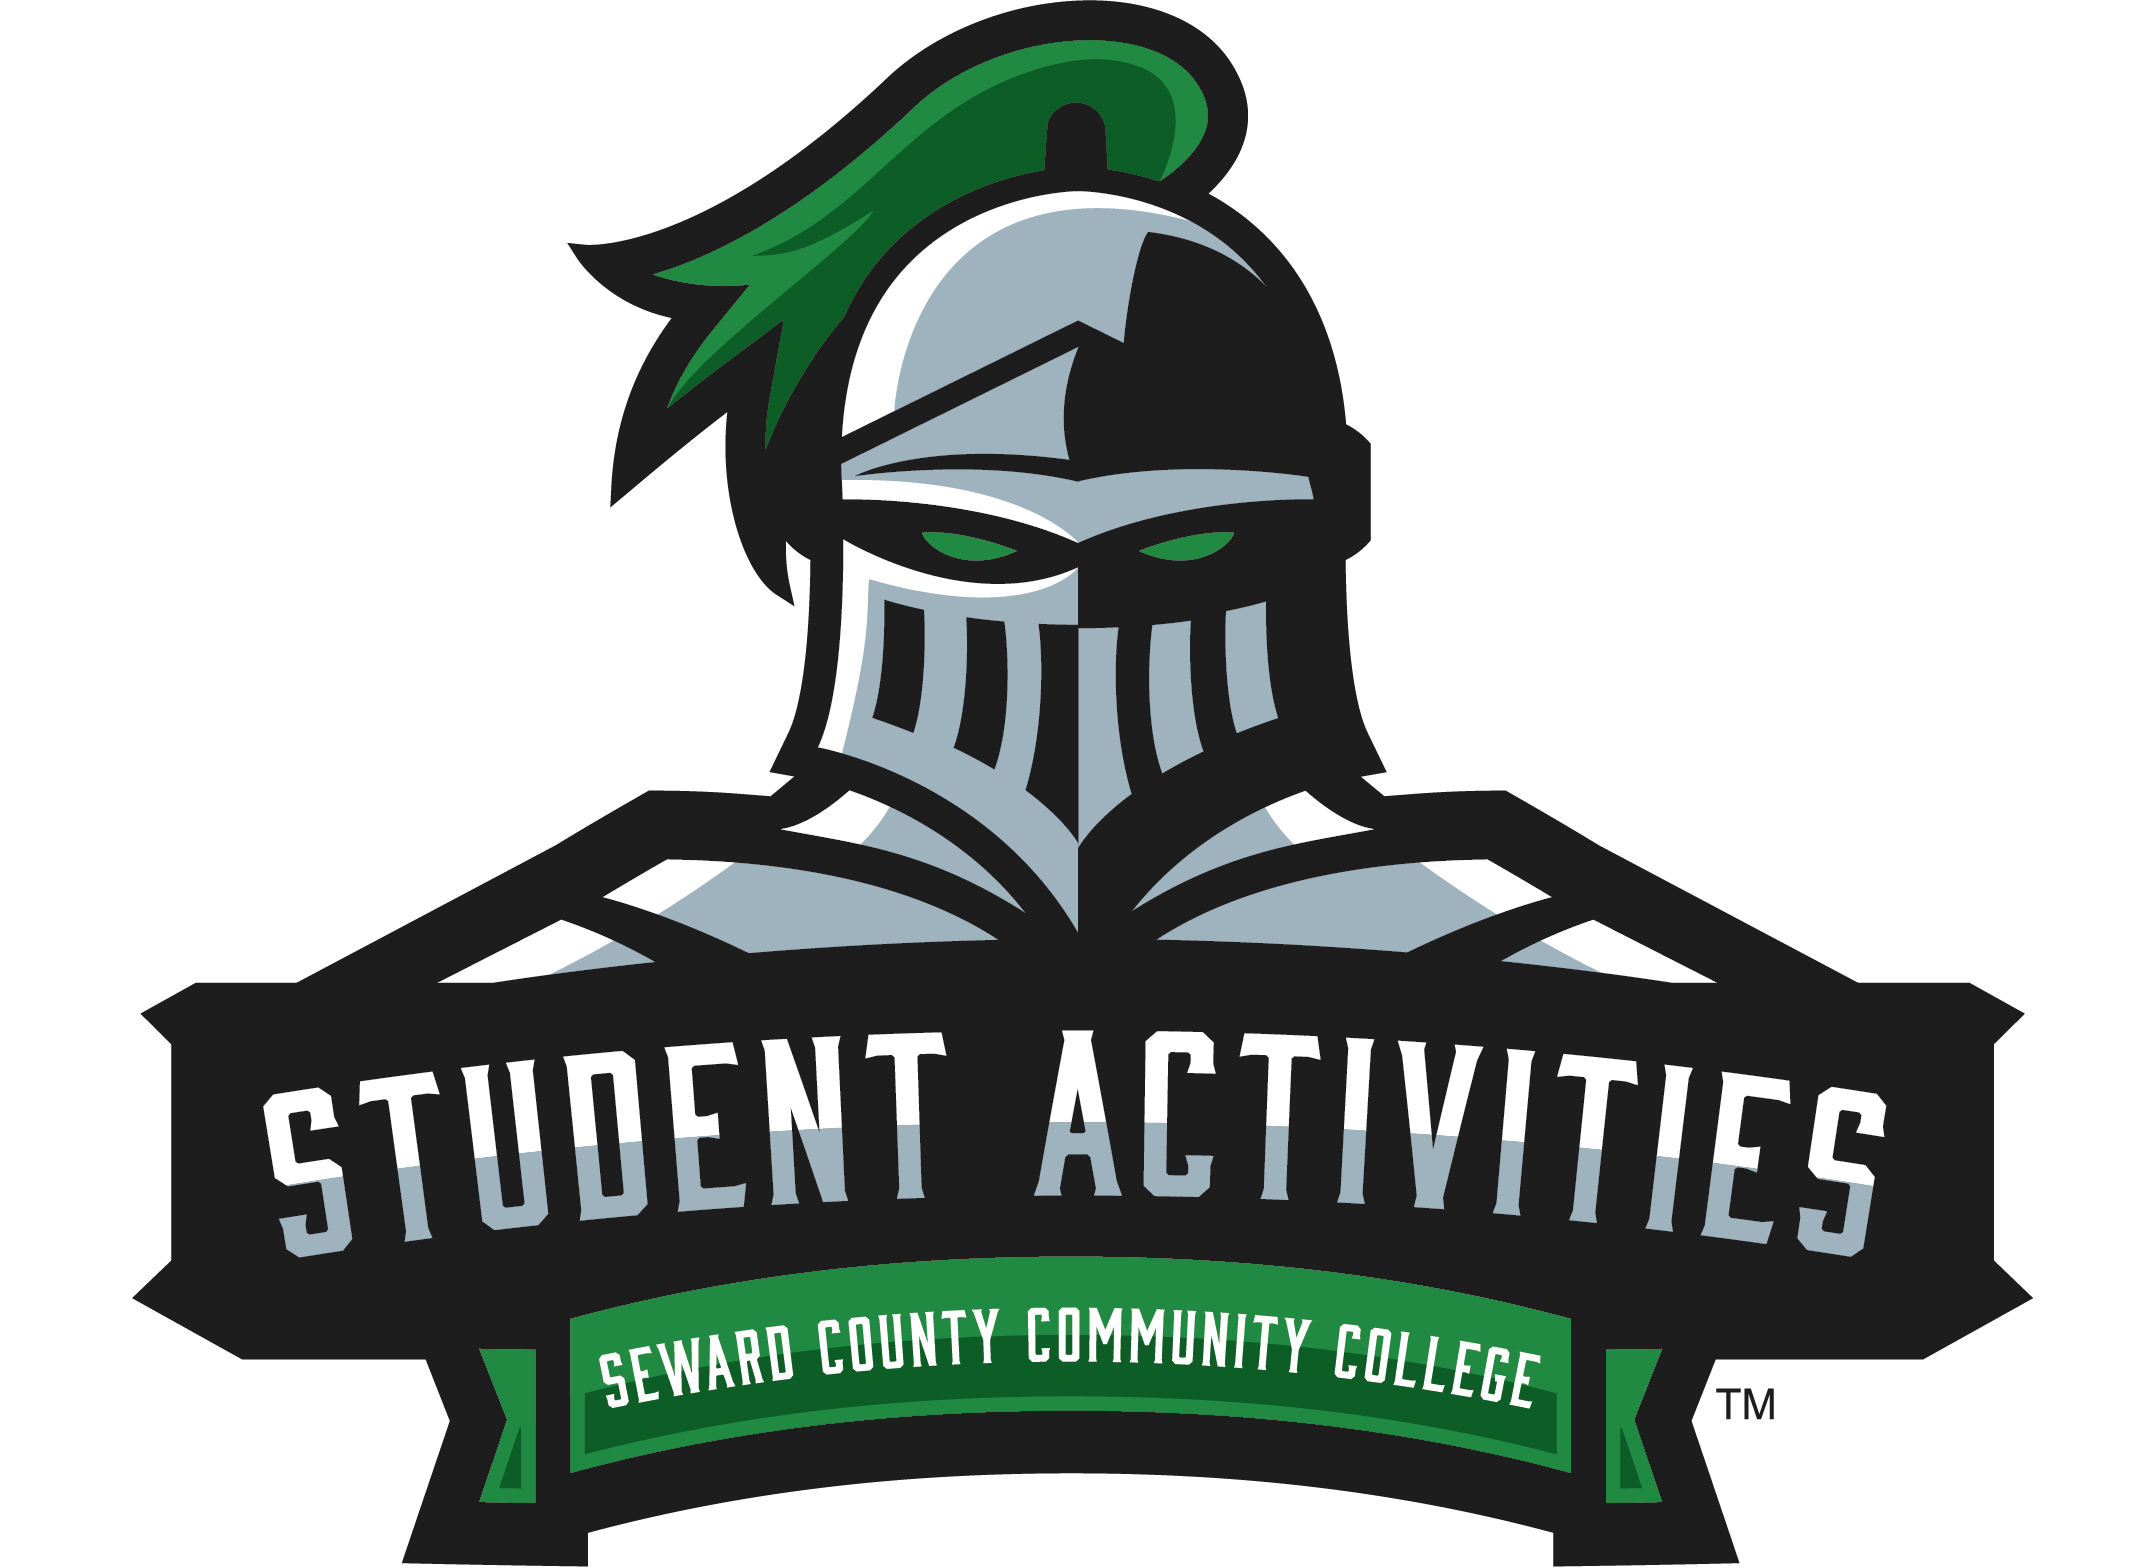 student activities logo. Louie the Saint